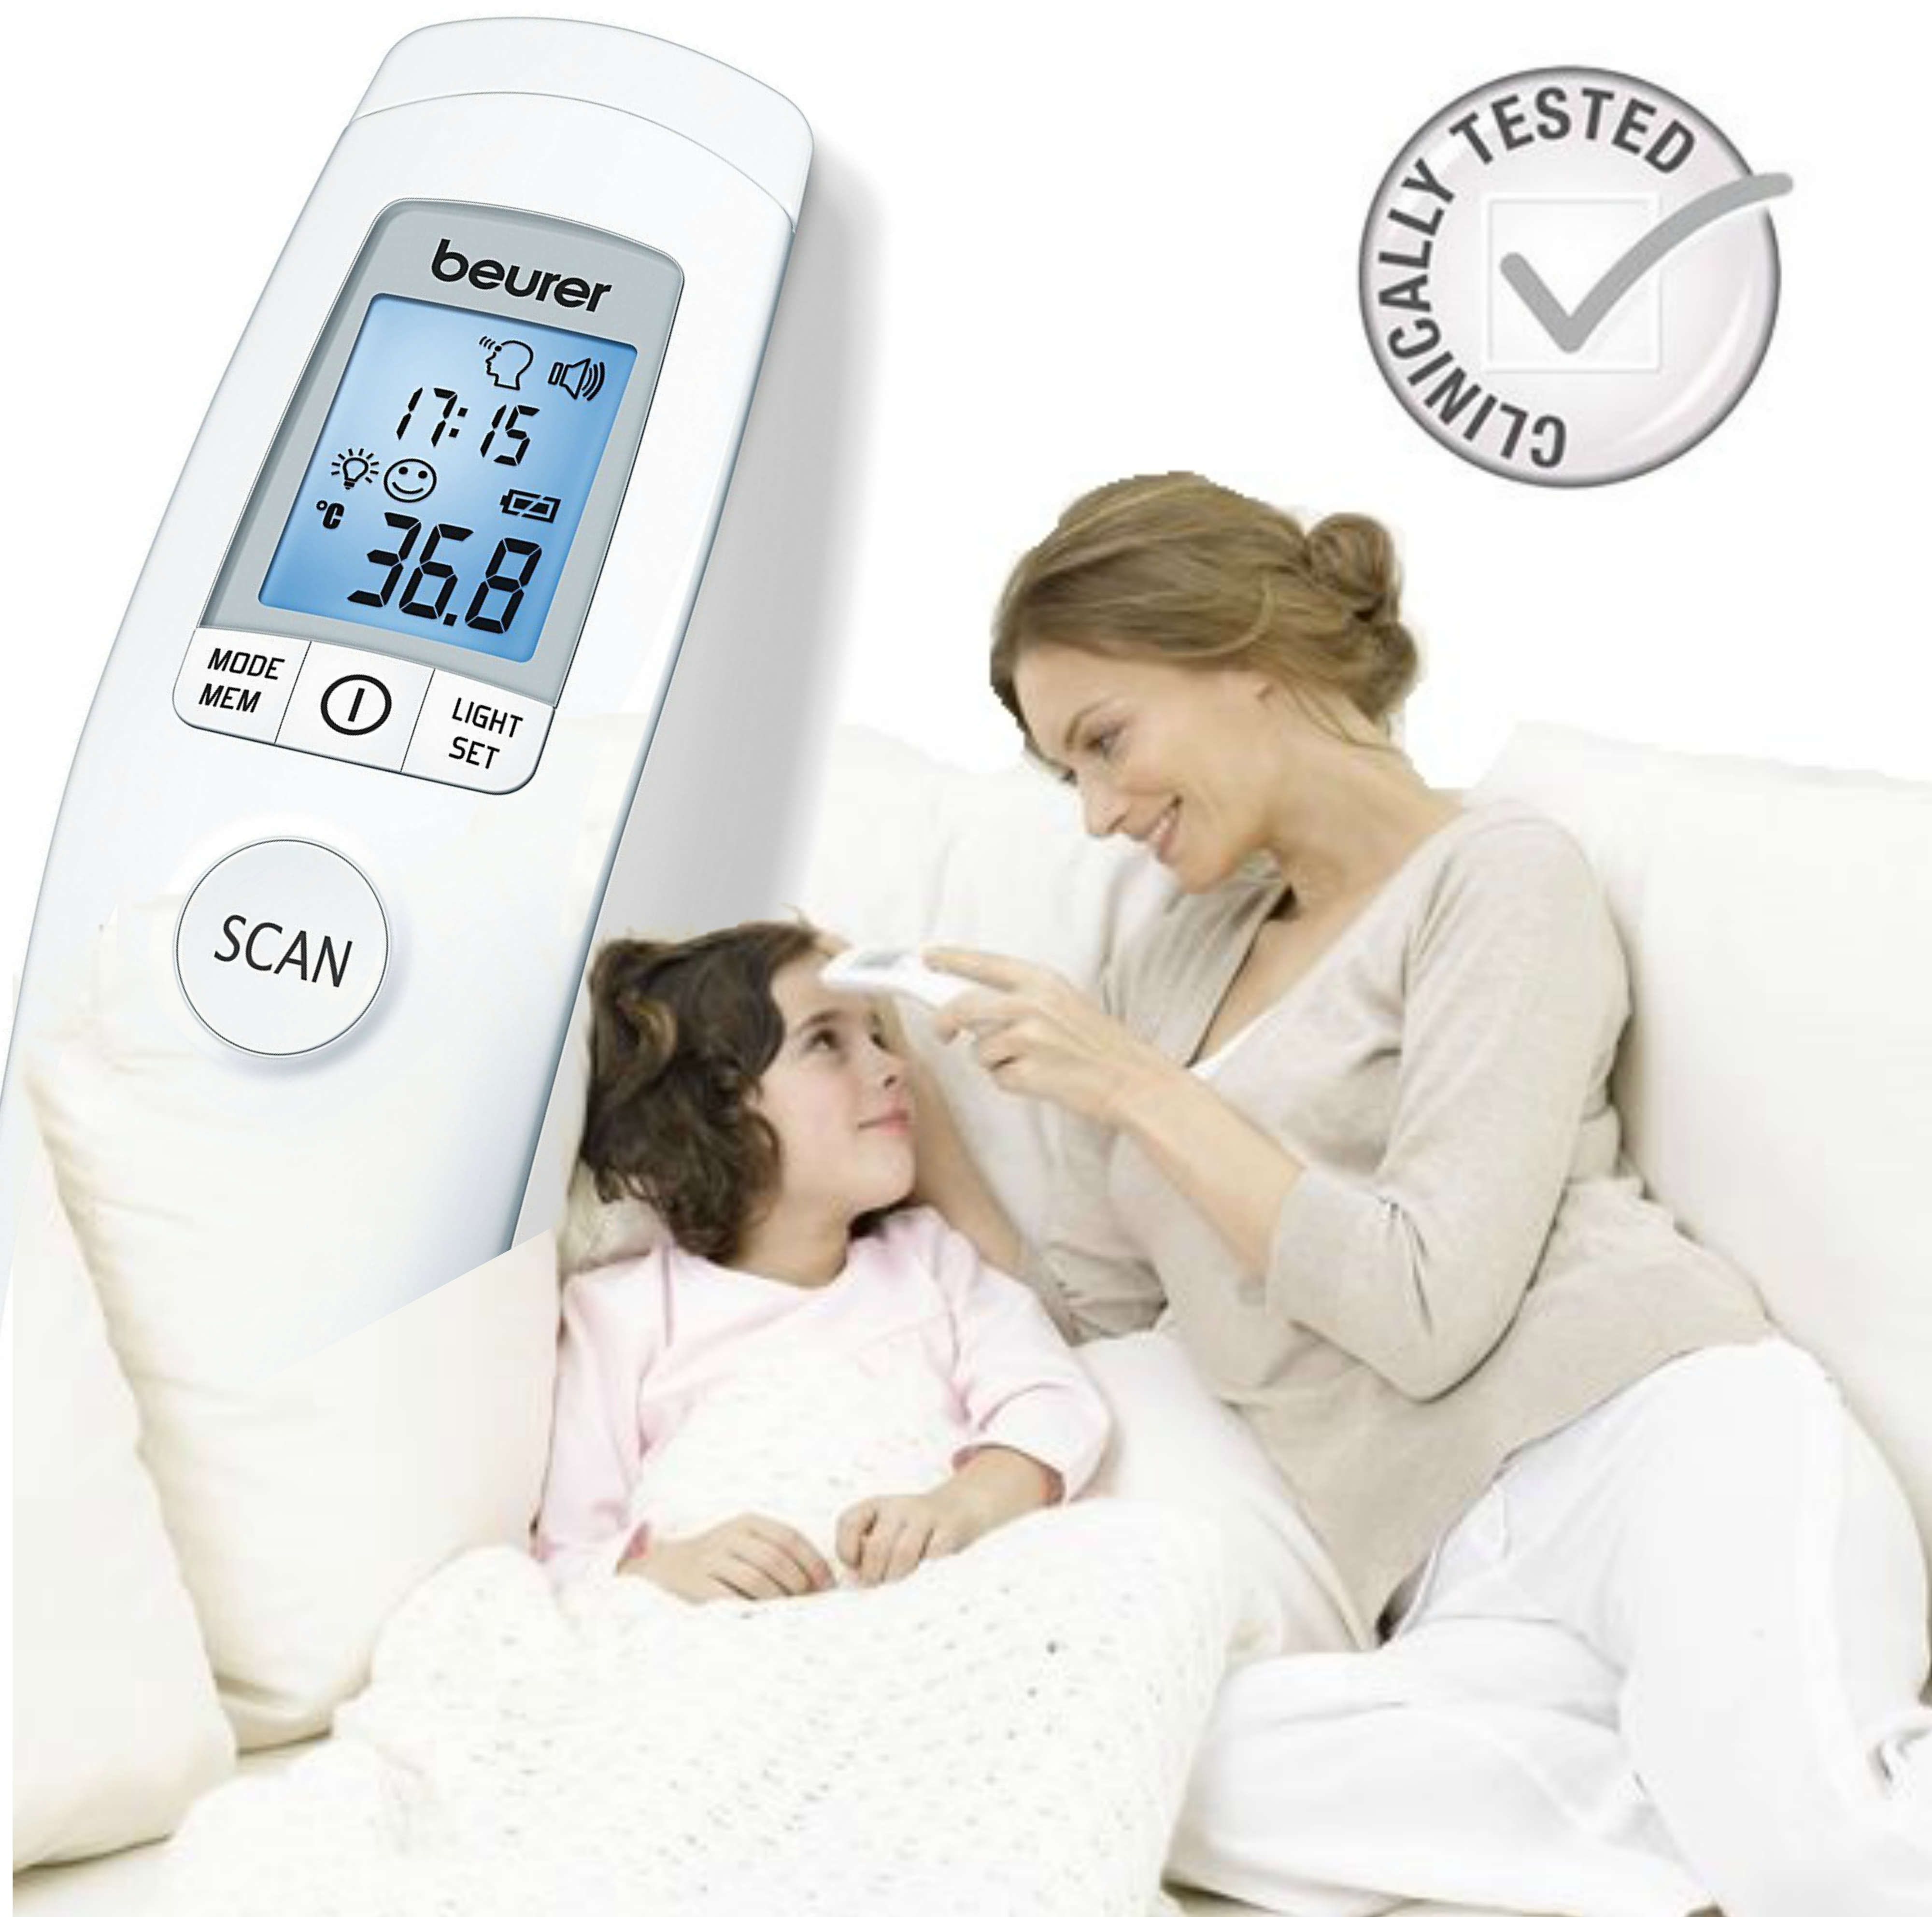 Beurer FT90 Non Contact Infrared Clinically Safe Thermometer|LCD|Fever Alarm|